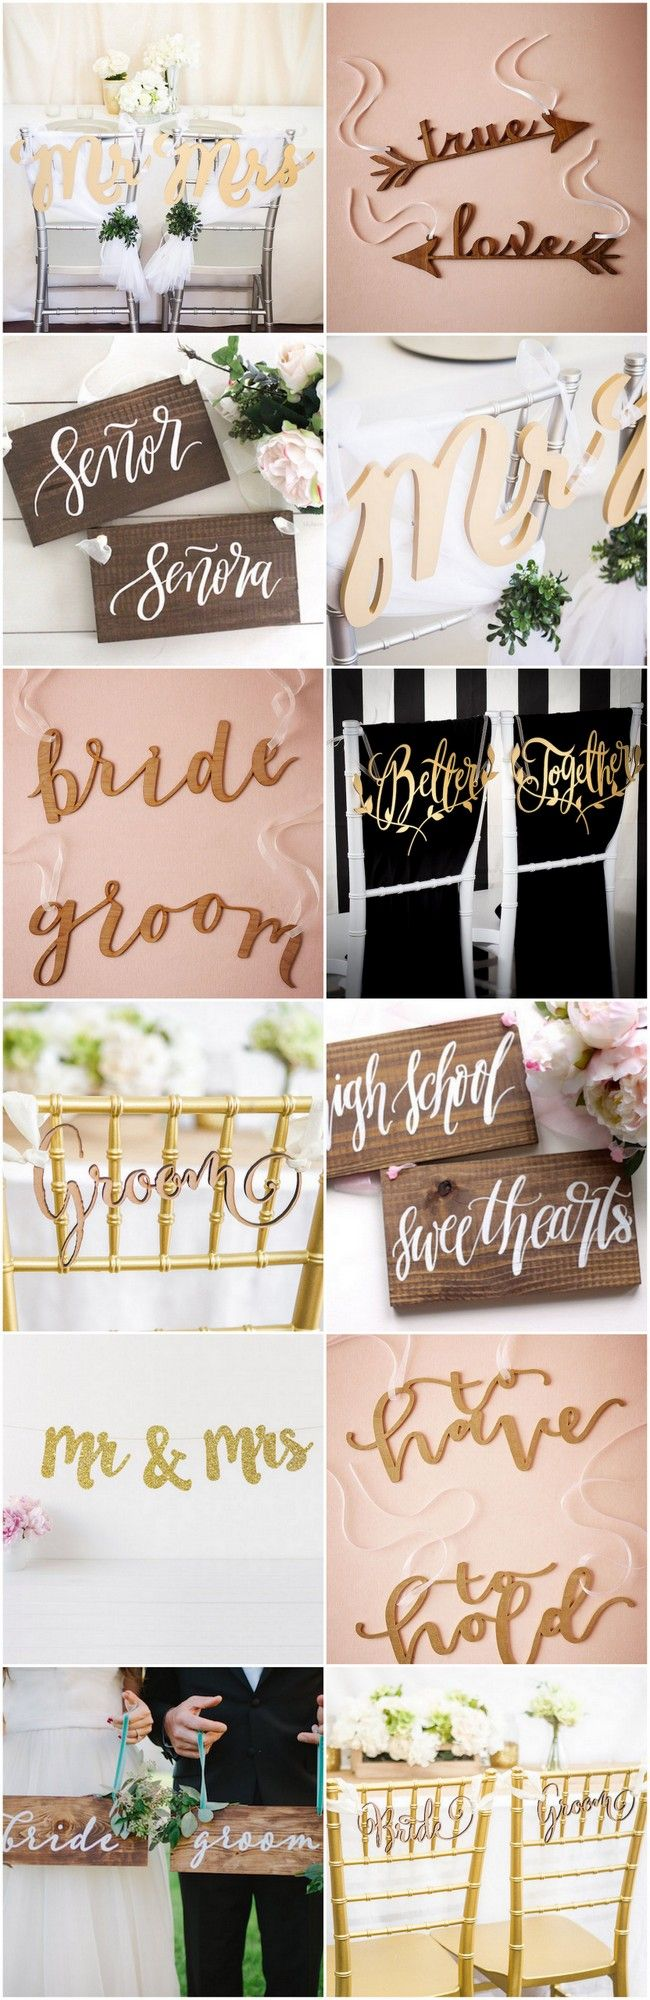 21 Creative Fun Mrrs Signs For Your Wedding Photos And Reception Chairs